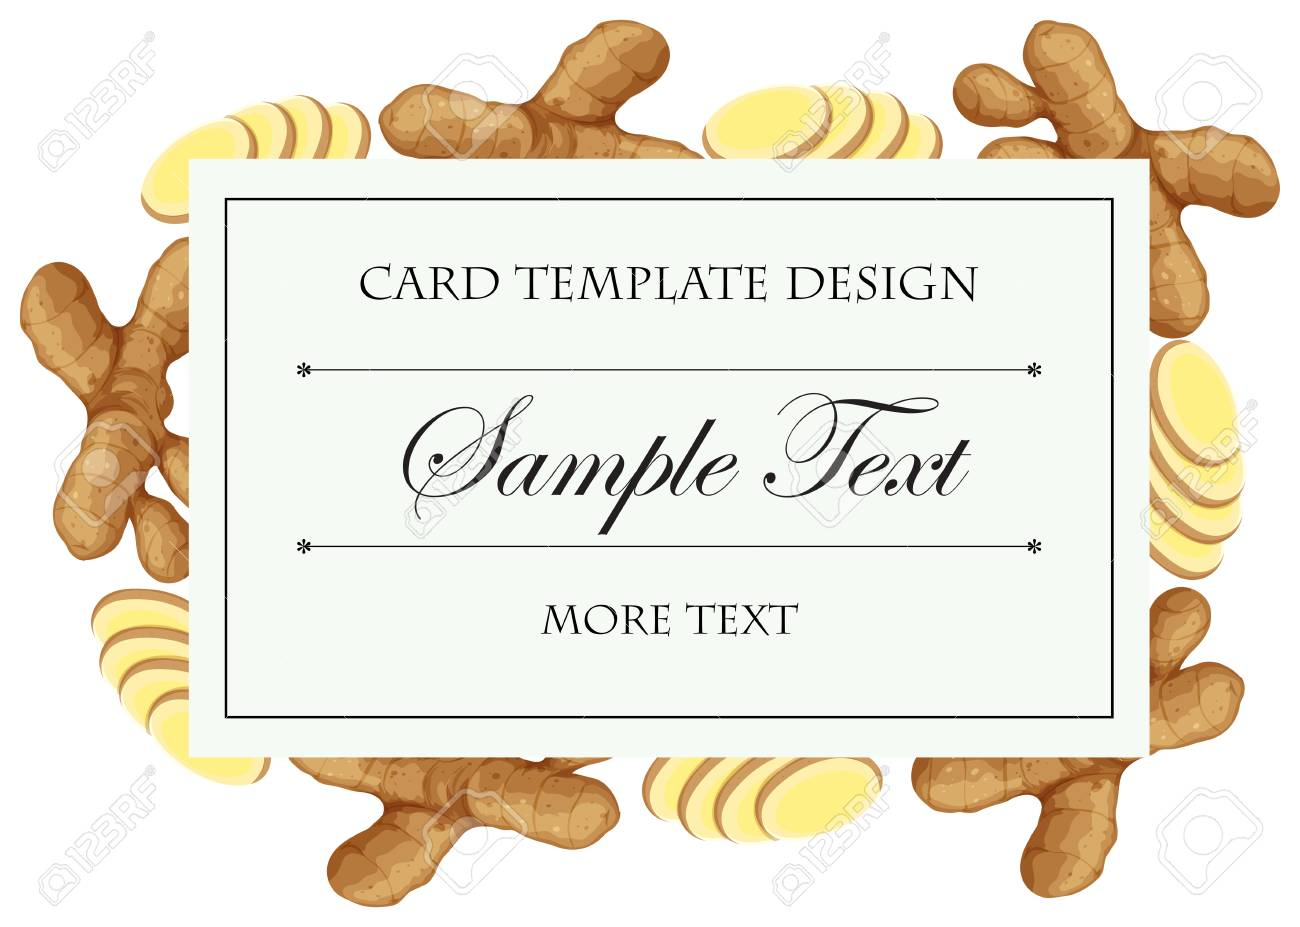 Card Template | Card Template With Fresh Ginger On Border Illustration Lizenzfrei